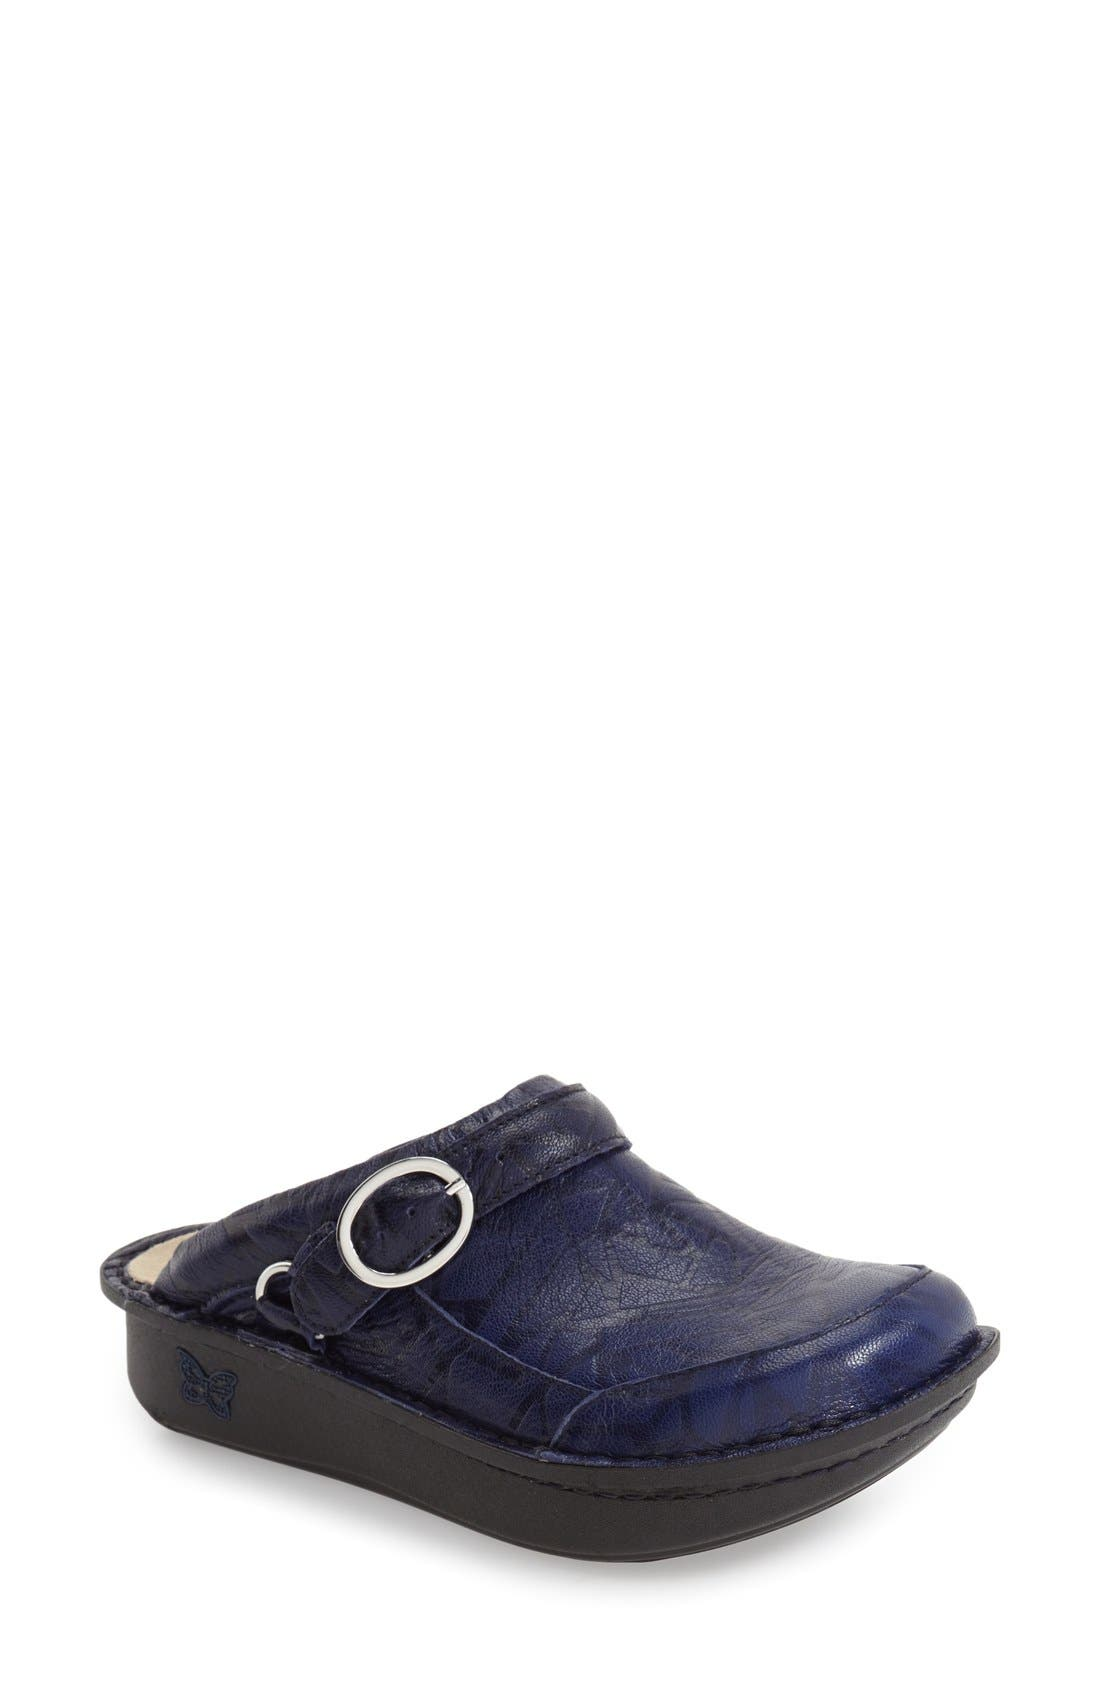 Seville Water Resistant Clog,                         Main,                         color, Tetrus Blue Leather